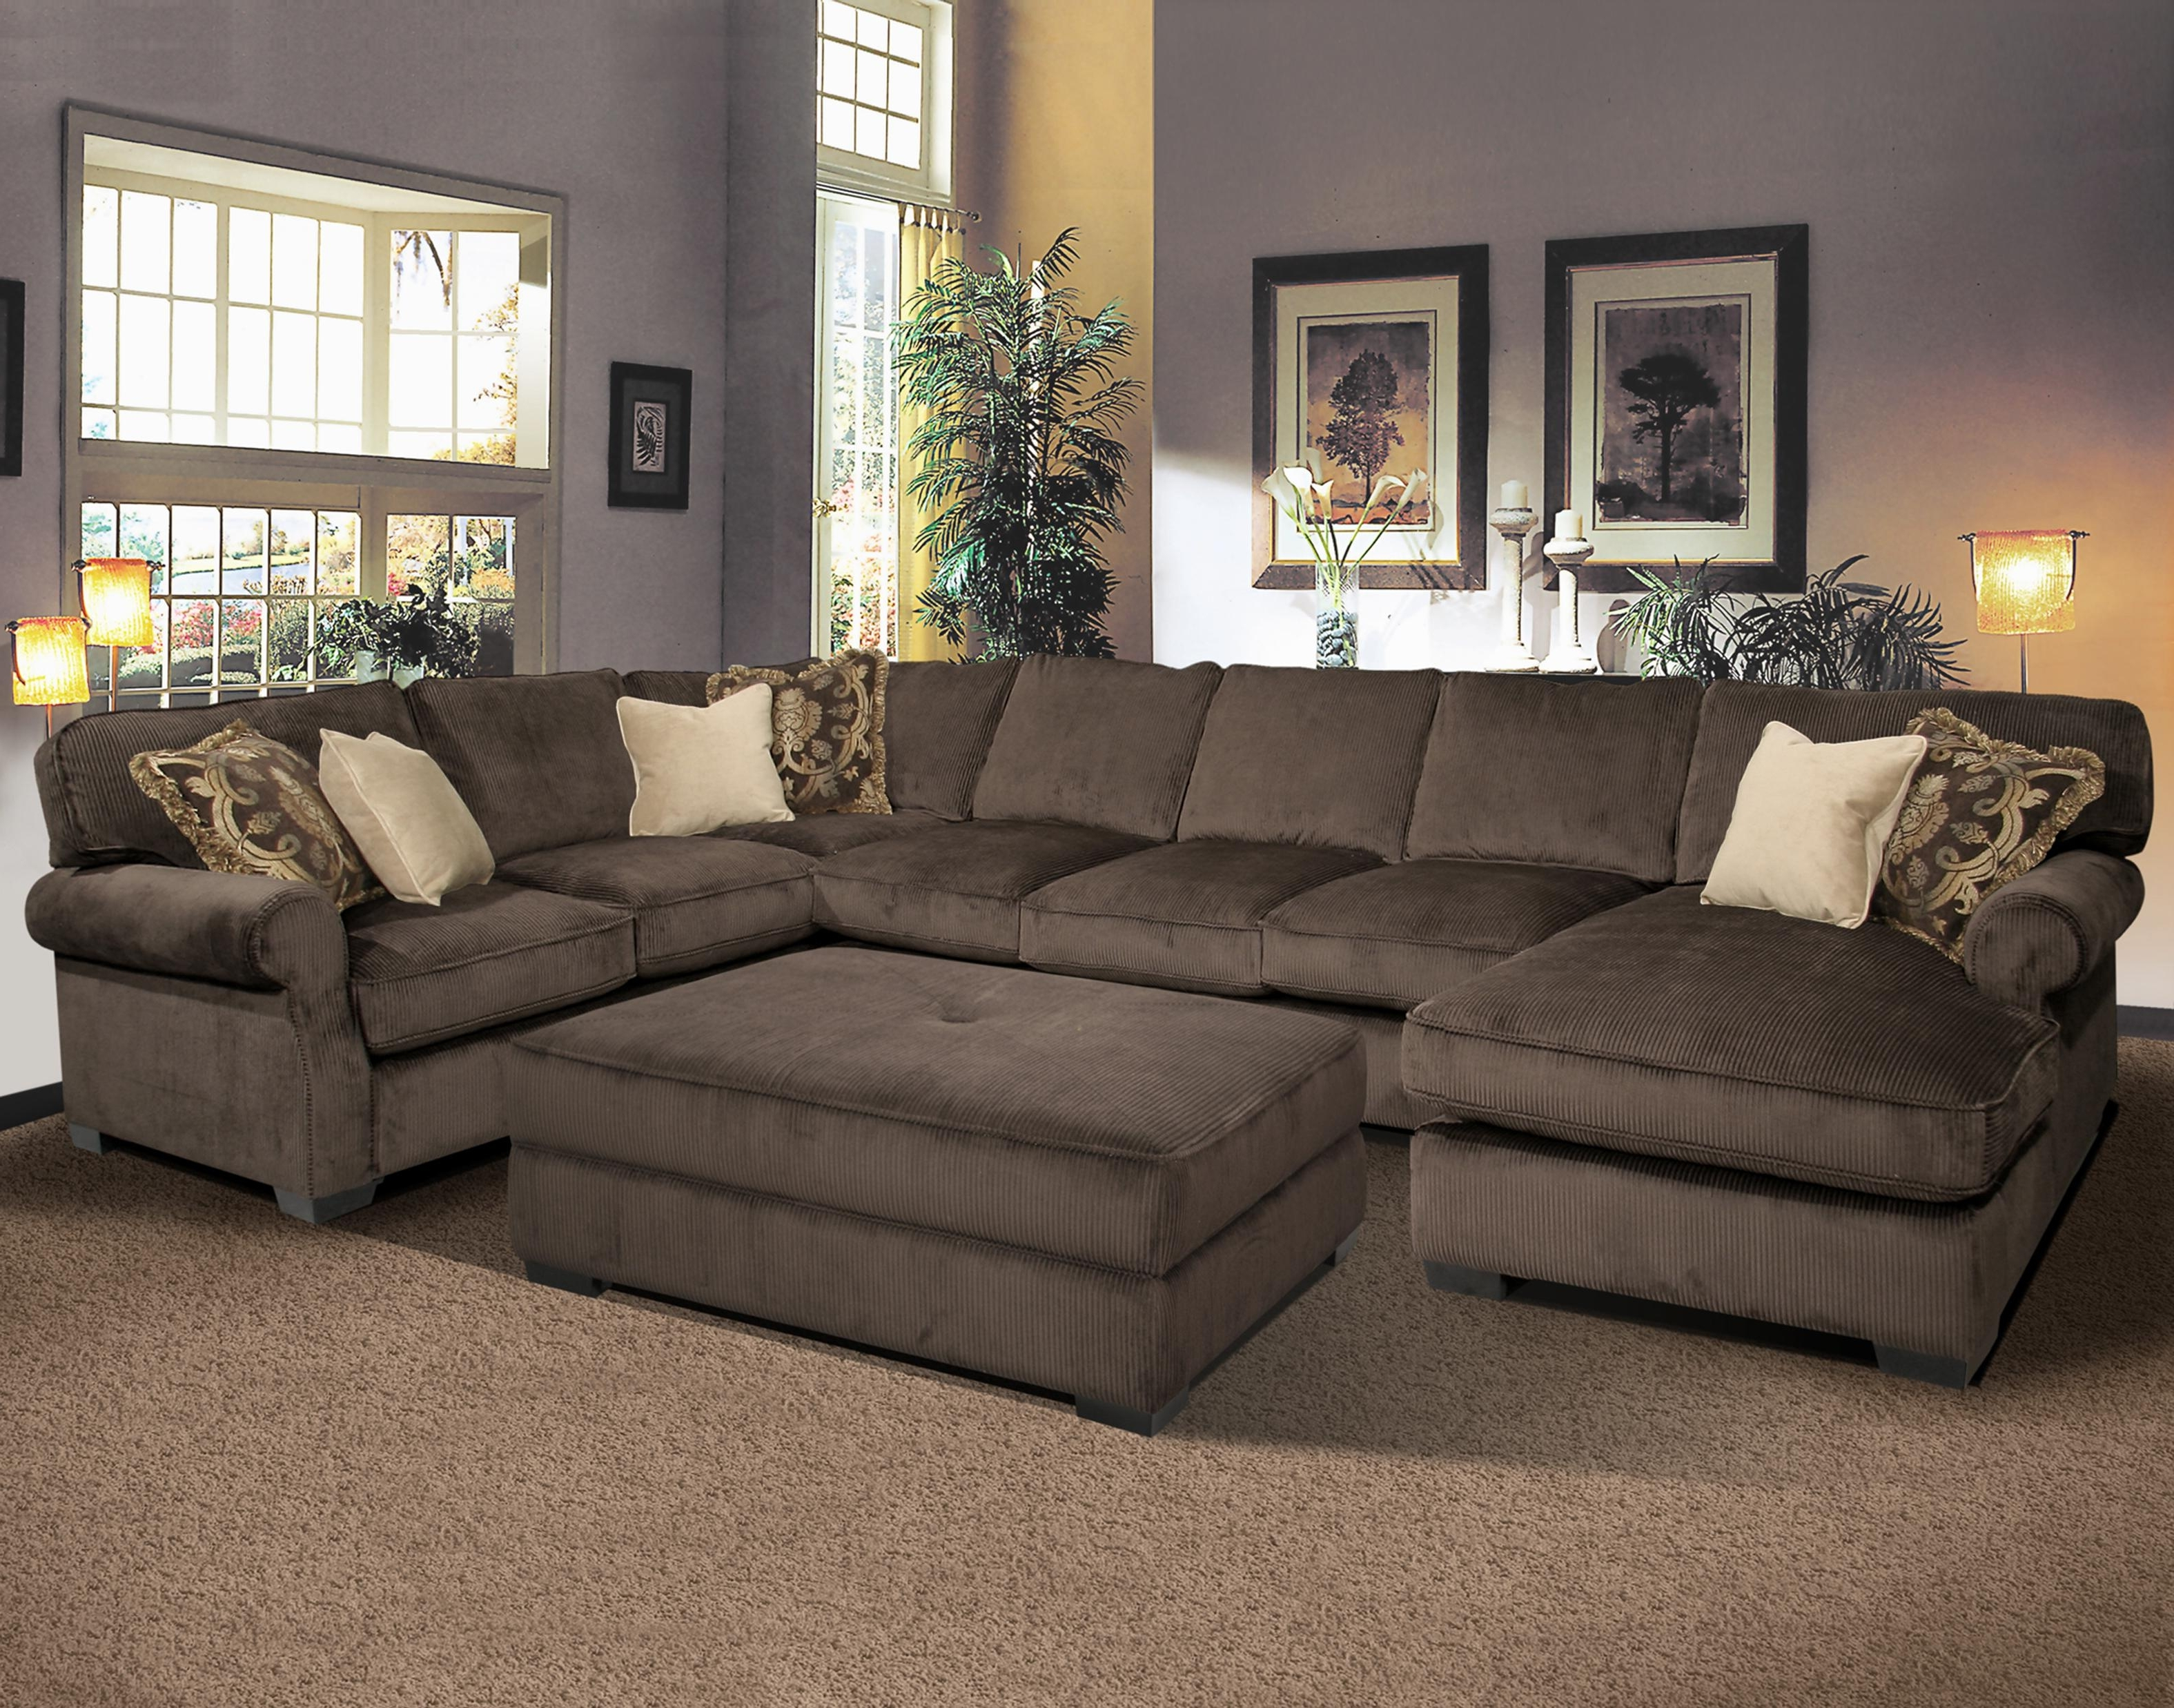 Awesome Comfy Sectional Sofas 26 For Sleeper Sectional Sofa For Throughout Most Recently Released Comfy Sectional Sofas (View 7 of 20)